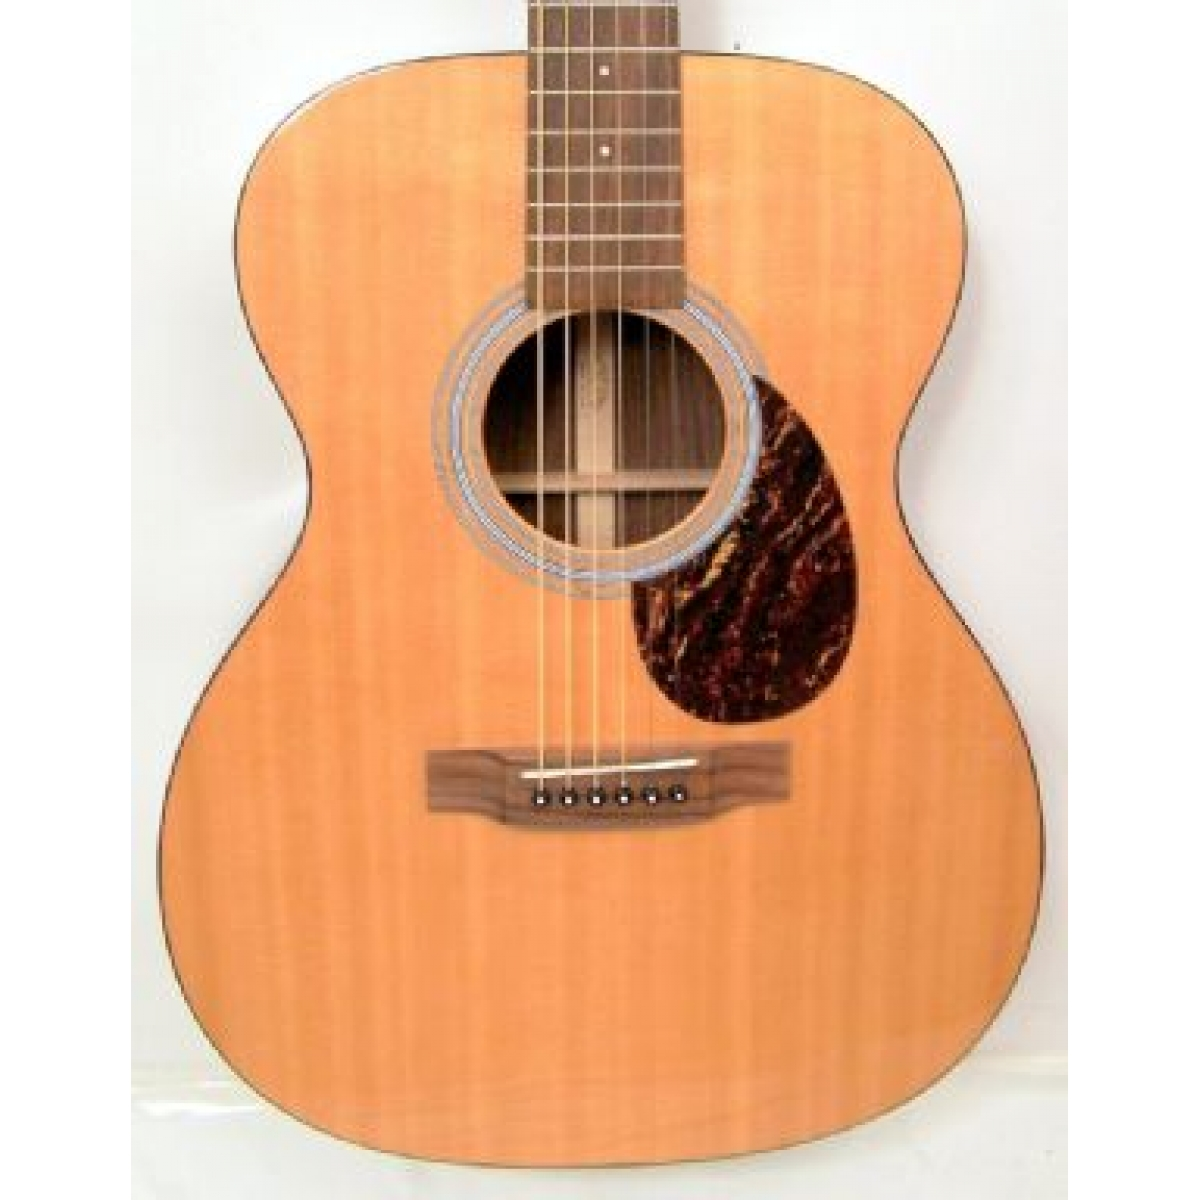 martin om21 orchesta model american acoustic guitar in natural case at promenade music. Black Bedroom Furniture Sets. Home Design Ideas